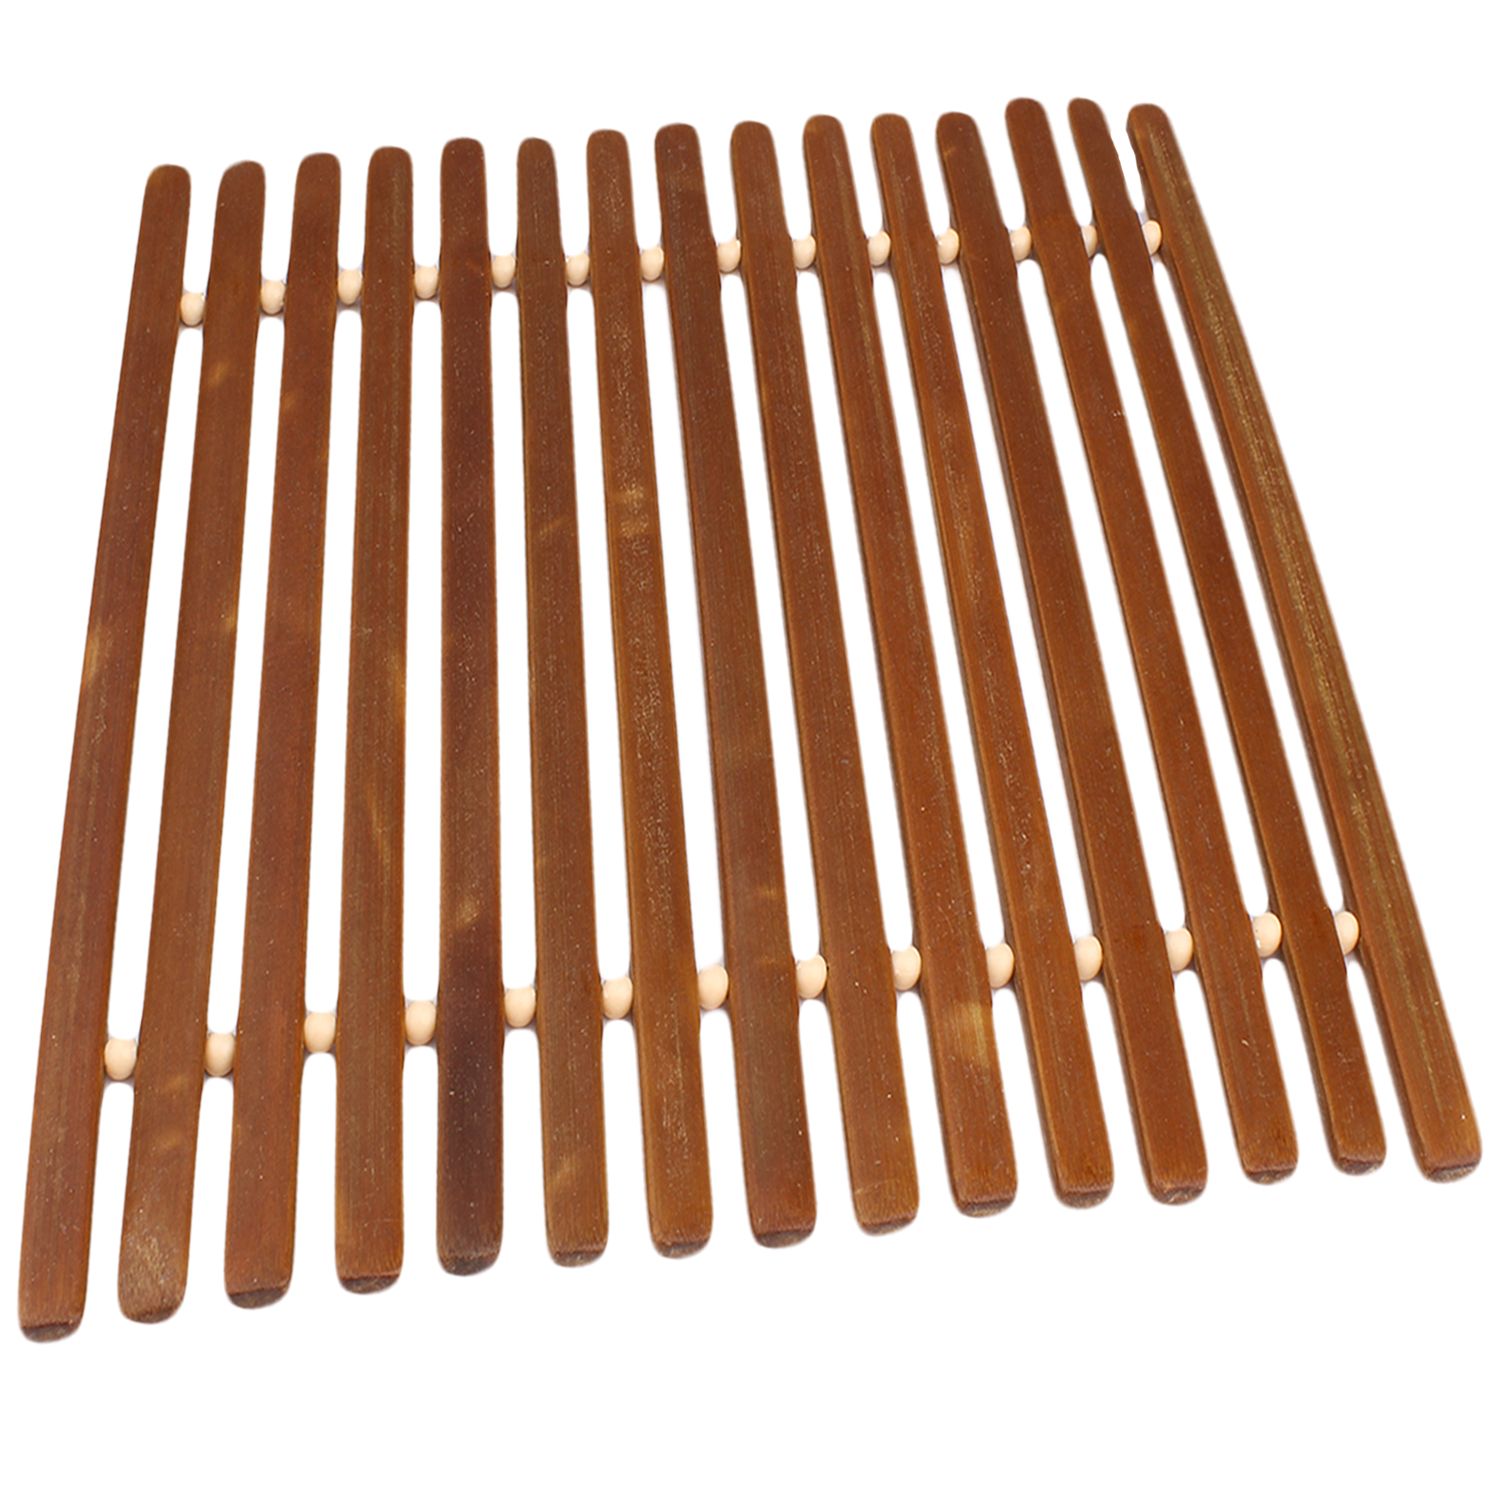 Square Bamboo Trivet Hot Mat for Countertops and Tables by bogo Brands (1 pack)